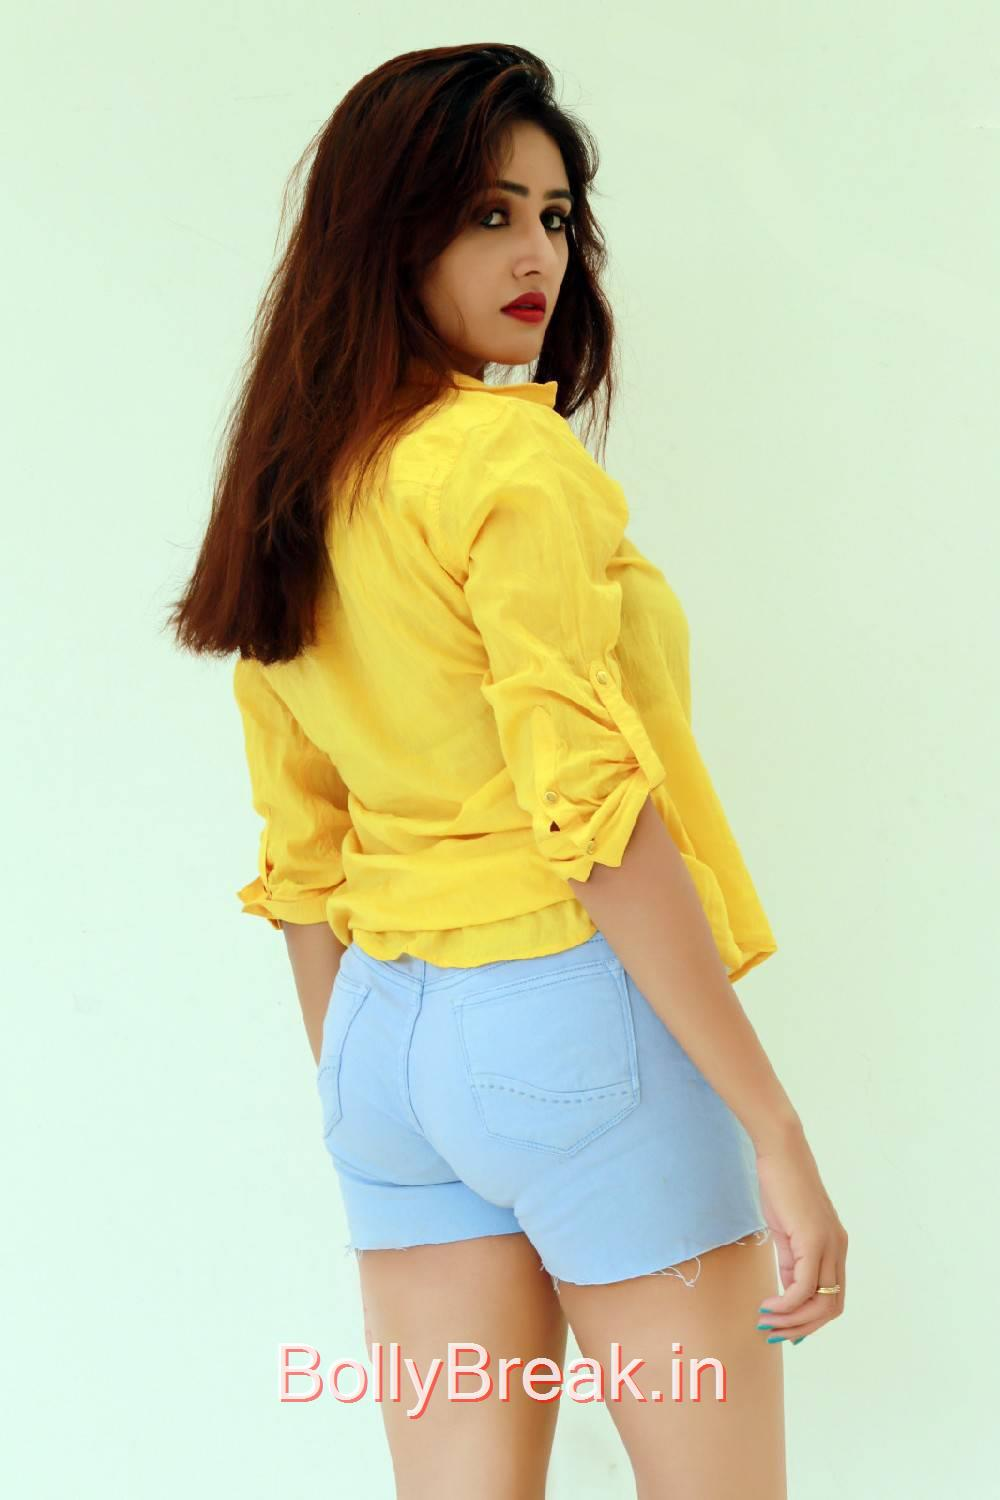 Sony Charishta Pics, Sony Charishta in Denim Shorts - Hot Photoshoot Images in Yellow Shirt